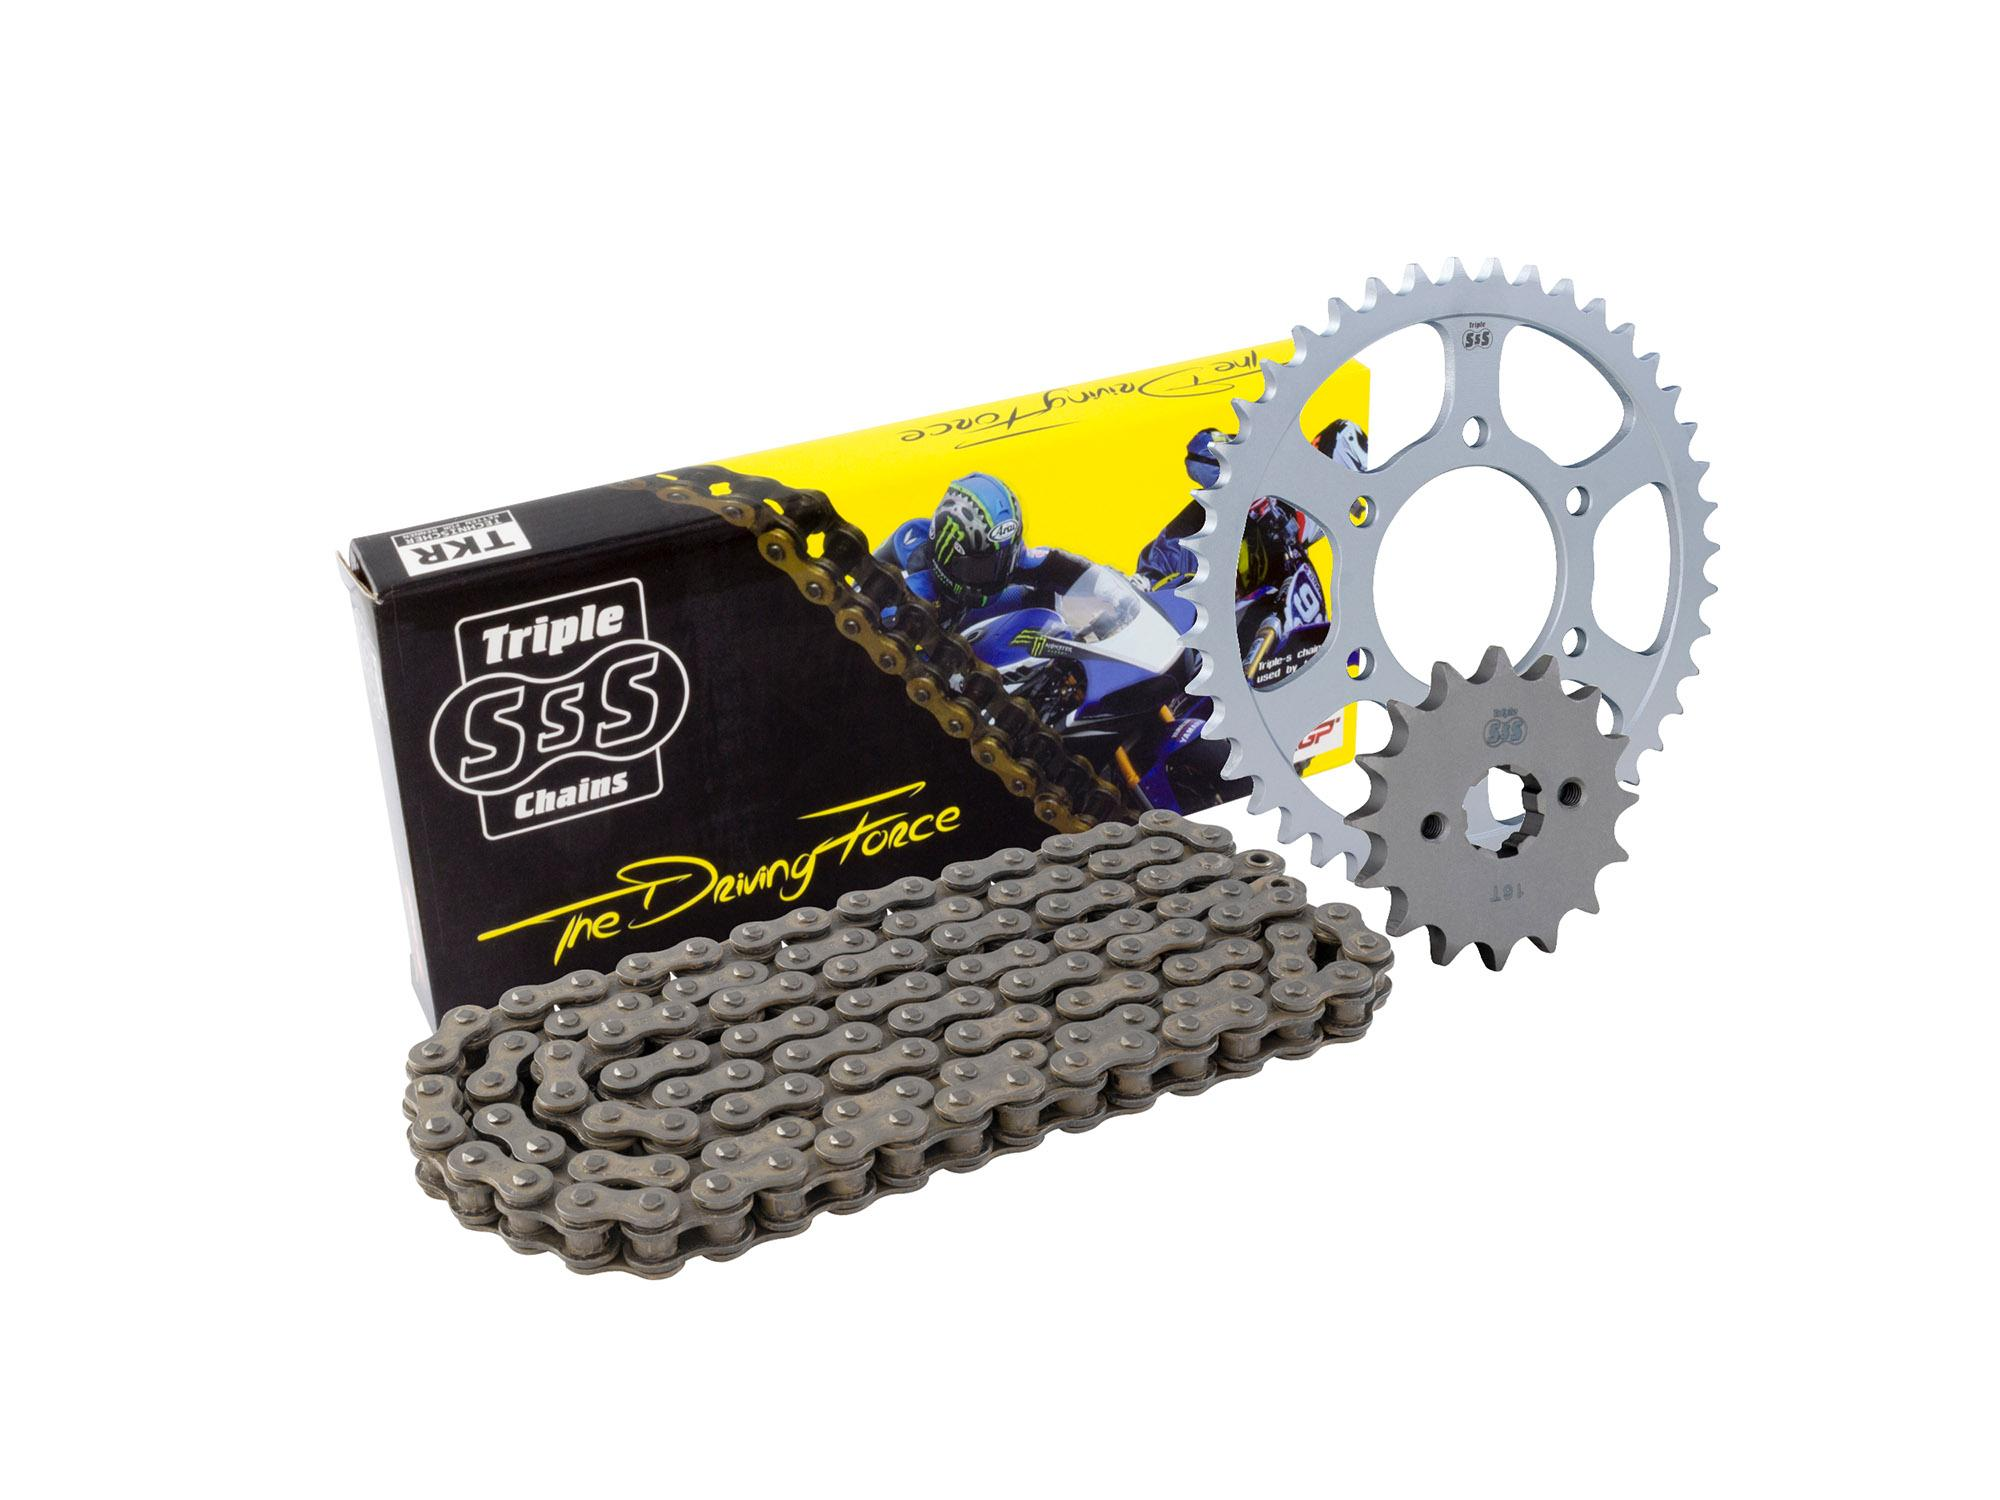 Aprilia 125 RS Extrema 04-05 Chain & Sprocket Kit: 17T Front, 40T Rear, HD O-Ring Black Chain 520H 108Link